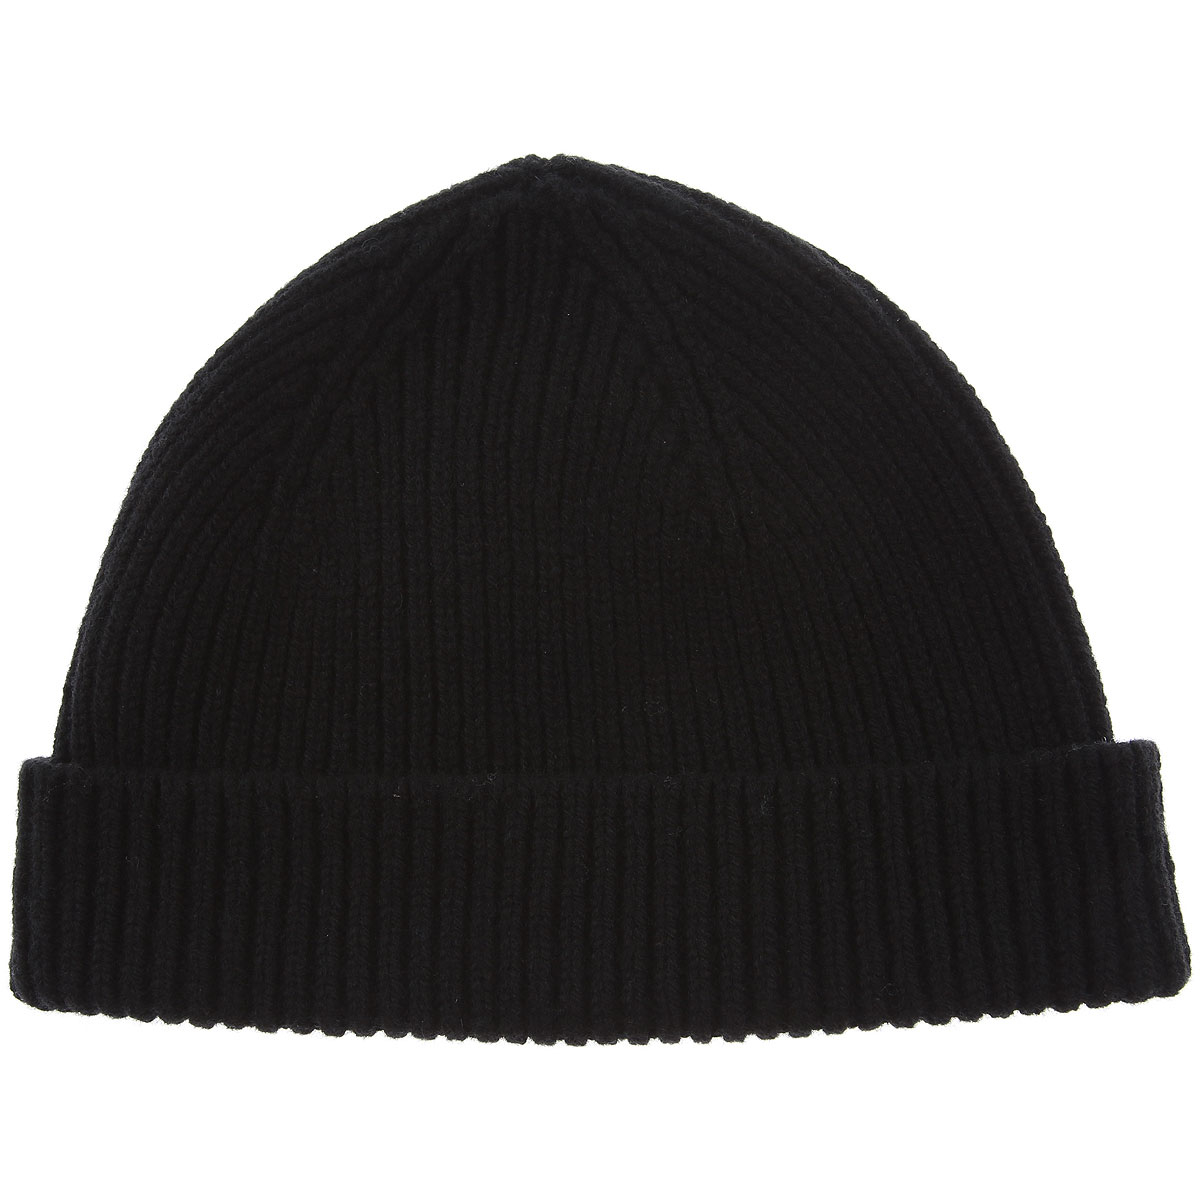 Paul Smith Hat for Women On Sale in Outlet Black DK - GOOFASH - Mens HATS